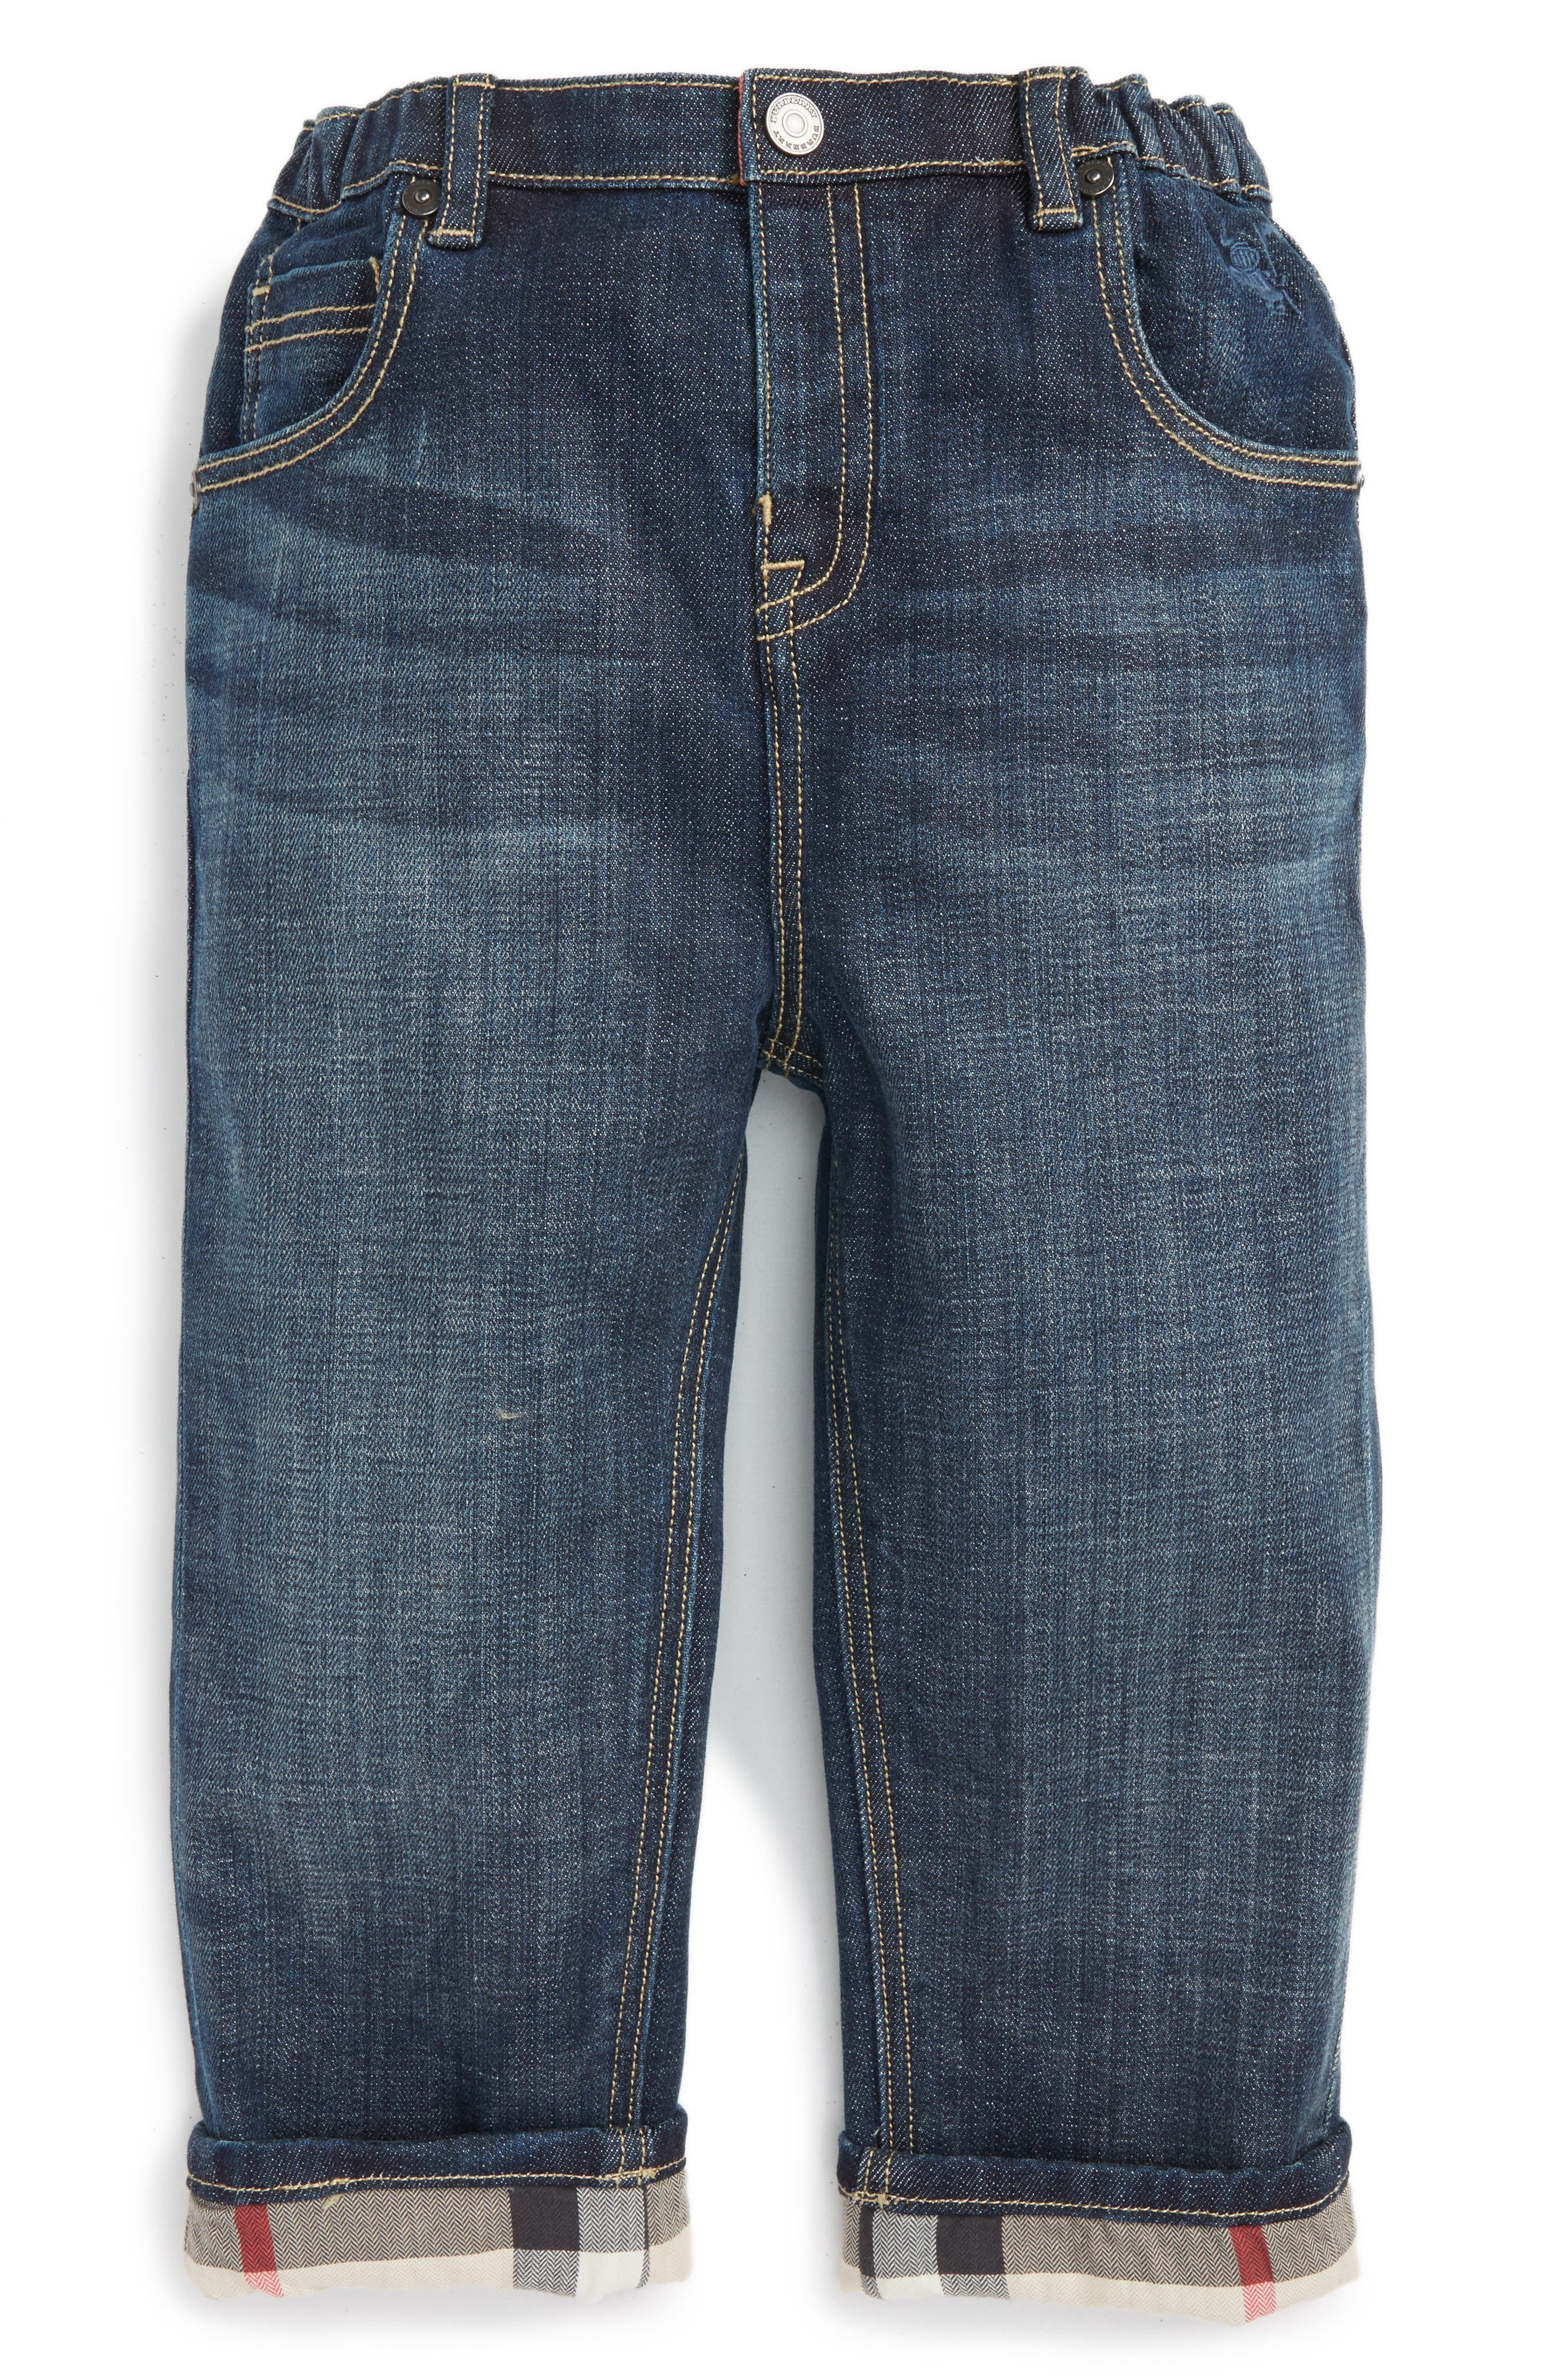 Burberry Pierre Check Lined Jeans (Baby Boys)